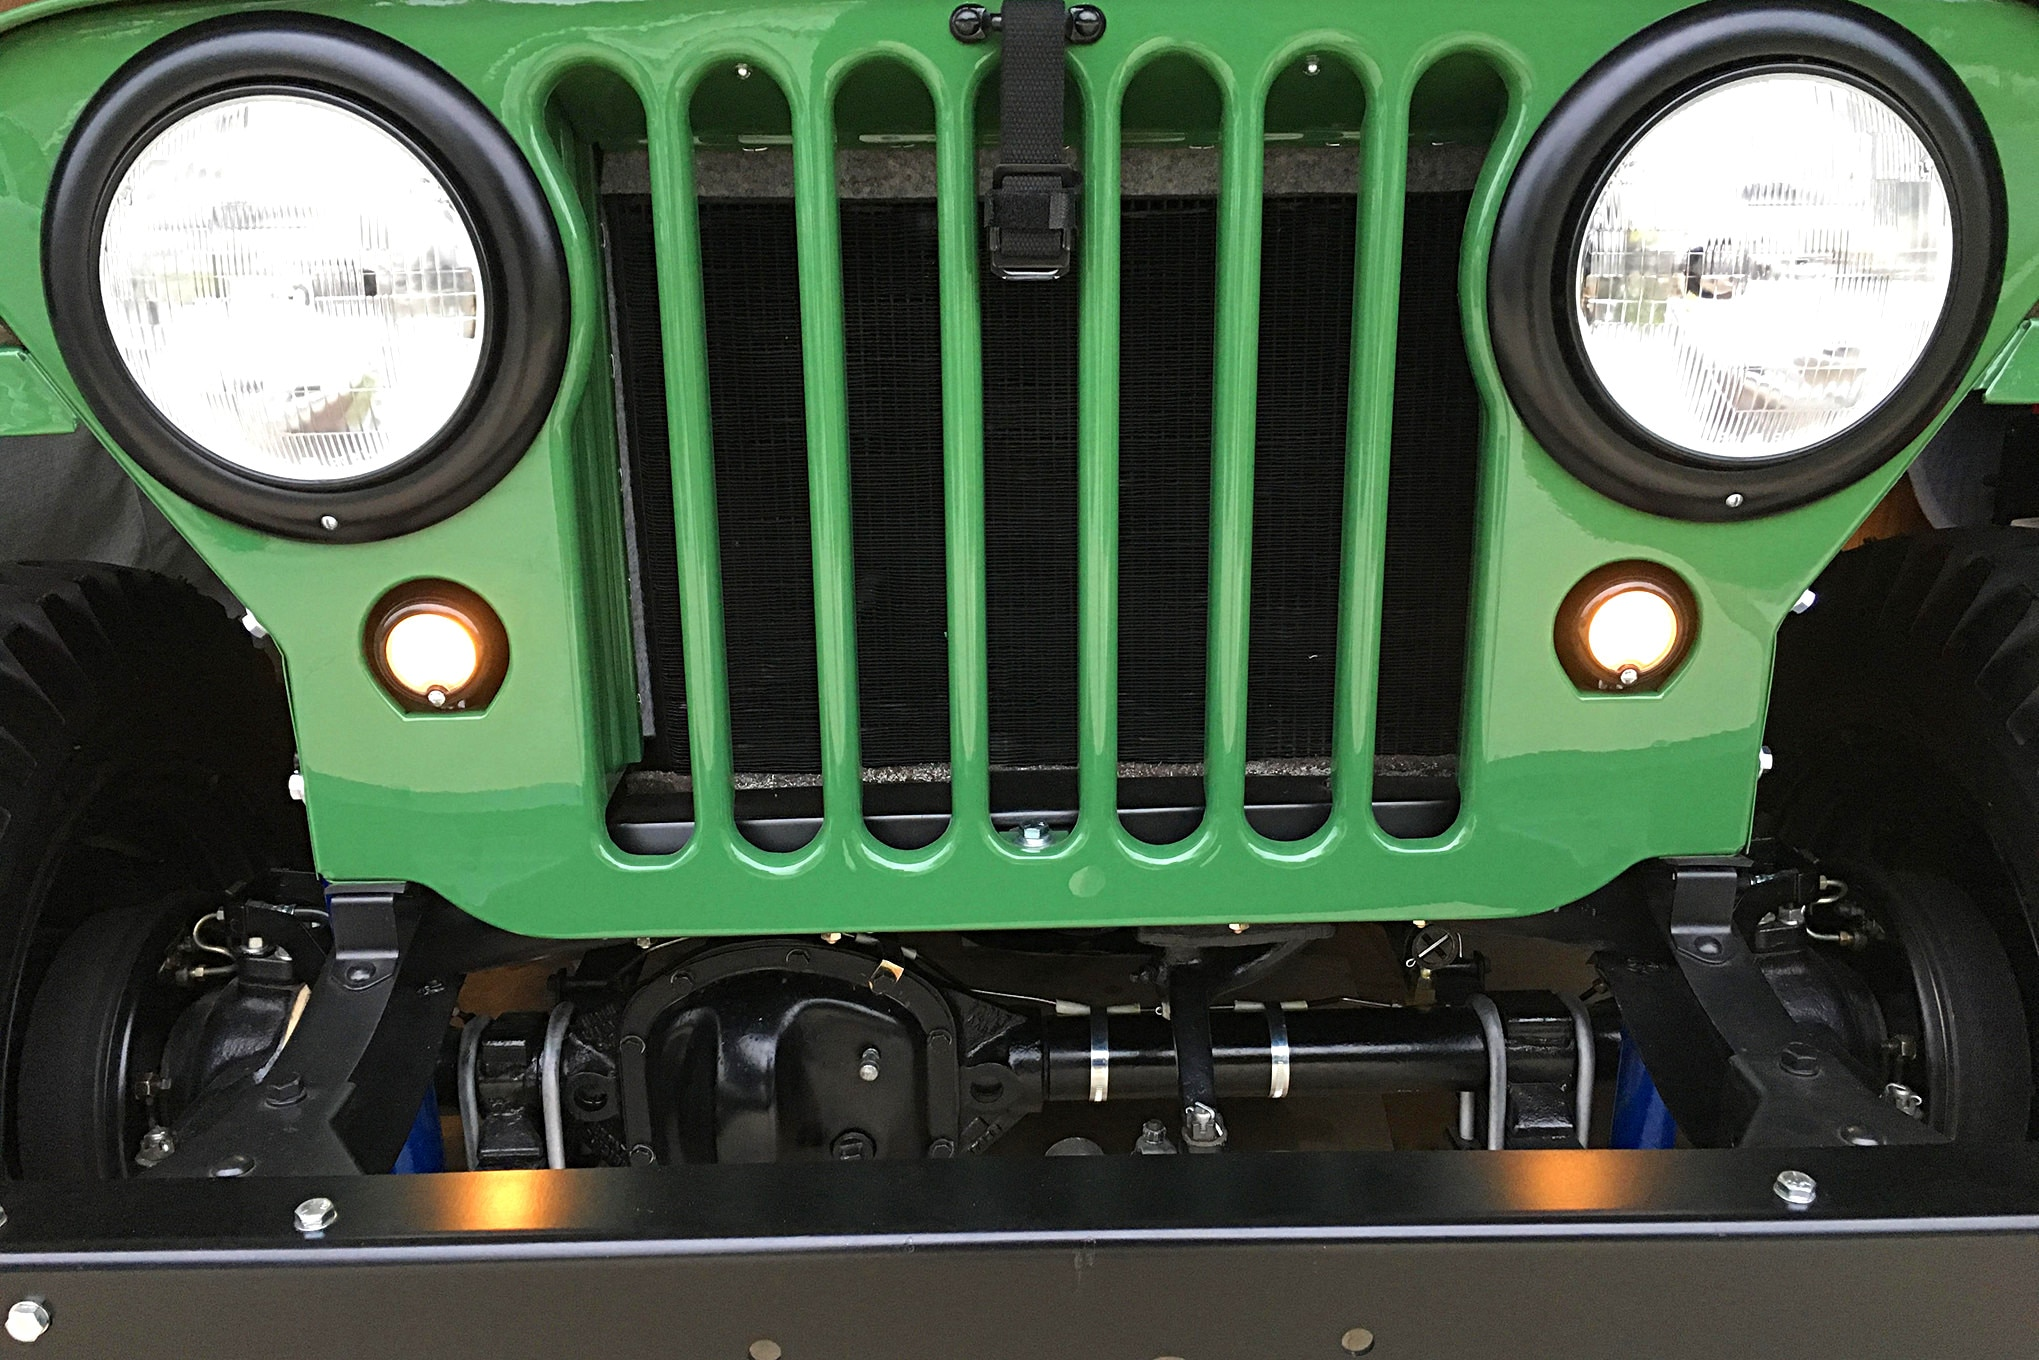 Jeep Cj Firewall Junction Wiring - Wiring Diagram Content Jeep Cj Firewall Junction Wiring on